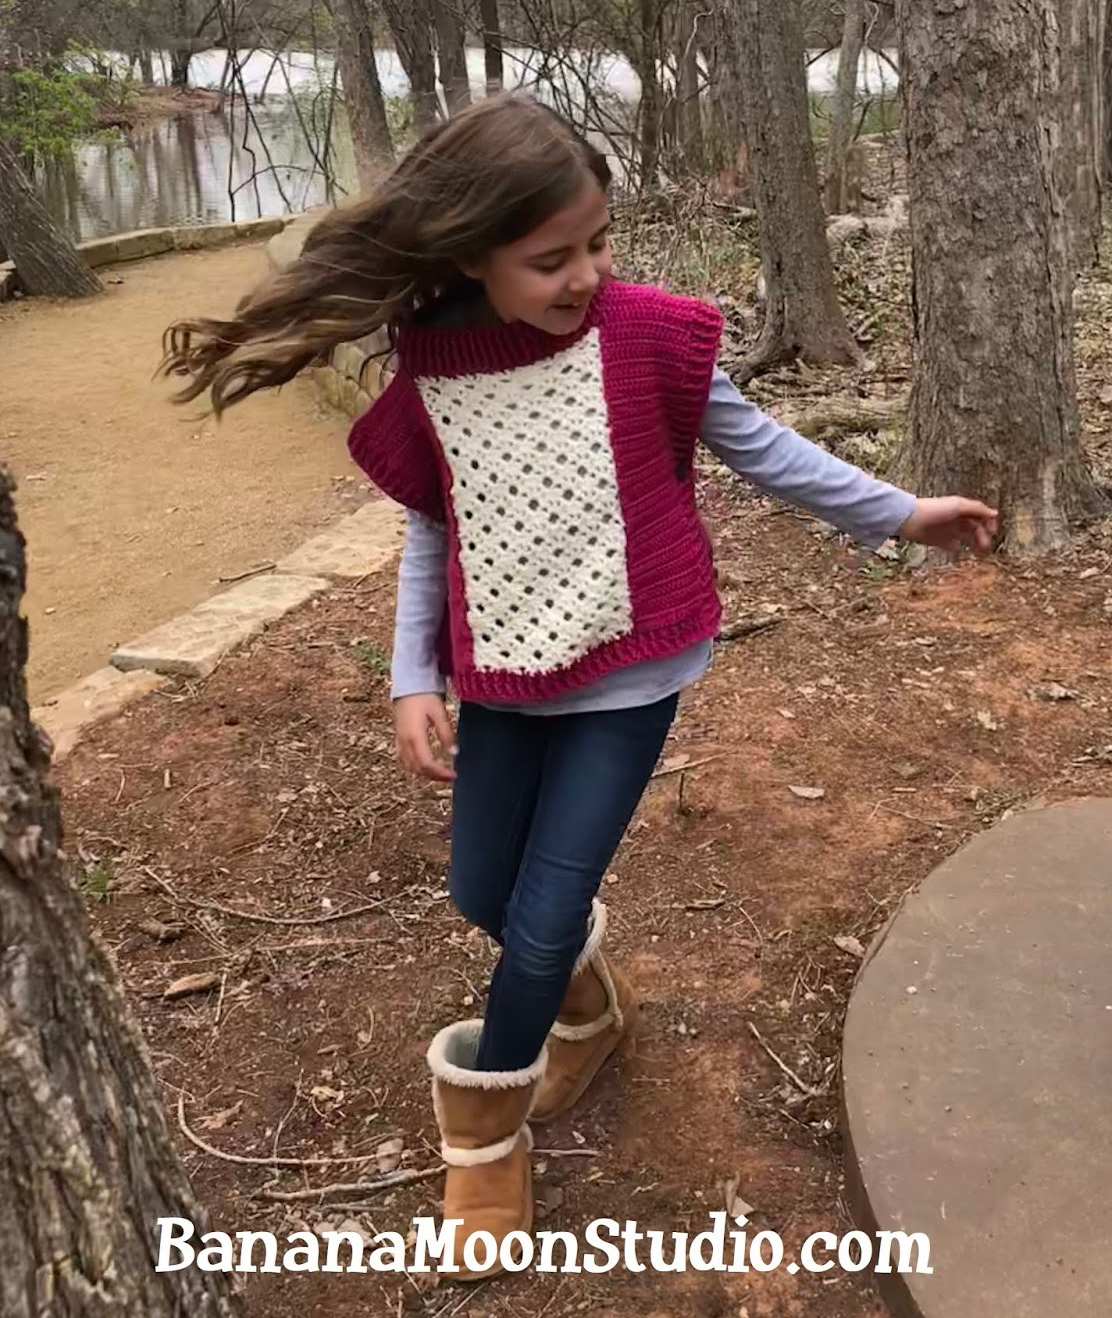 Learn how to make this cute girls poncho! Free crochet pattern and how-to videos from Banana Moon Studio